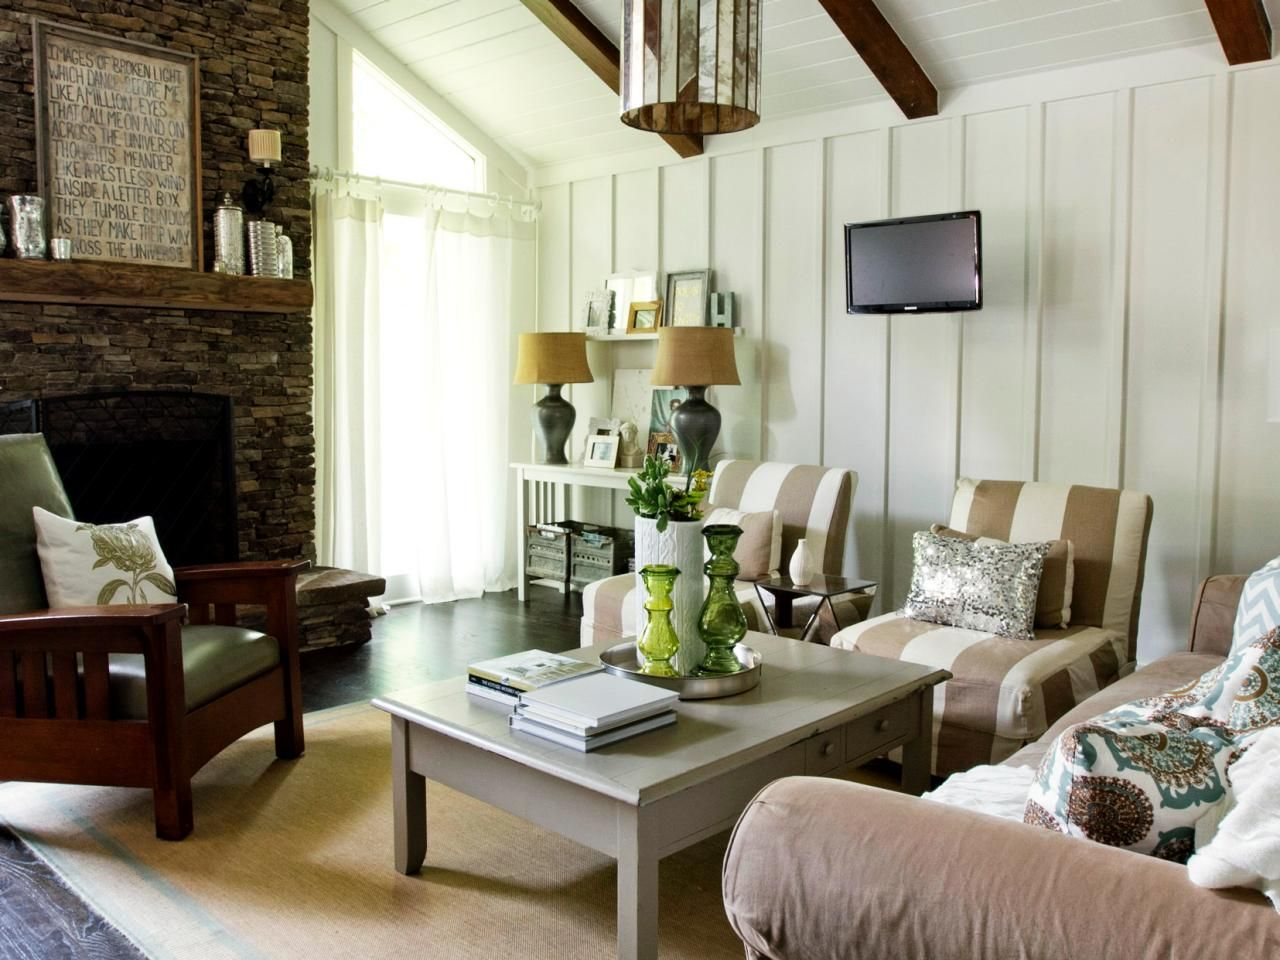 Small cabin ideas pictures remodel and decor - Coastal Cottage Top Living Room Design Styles Home Remodeling Ideas